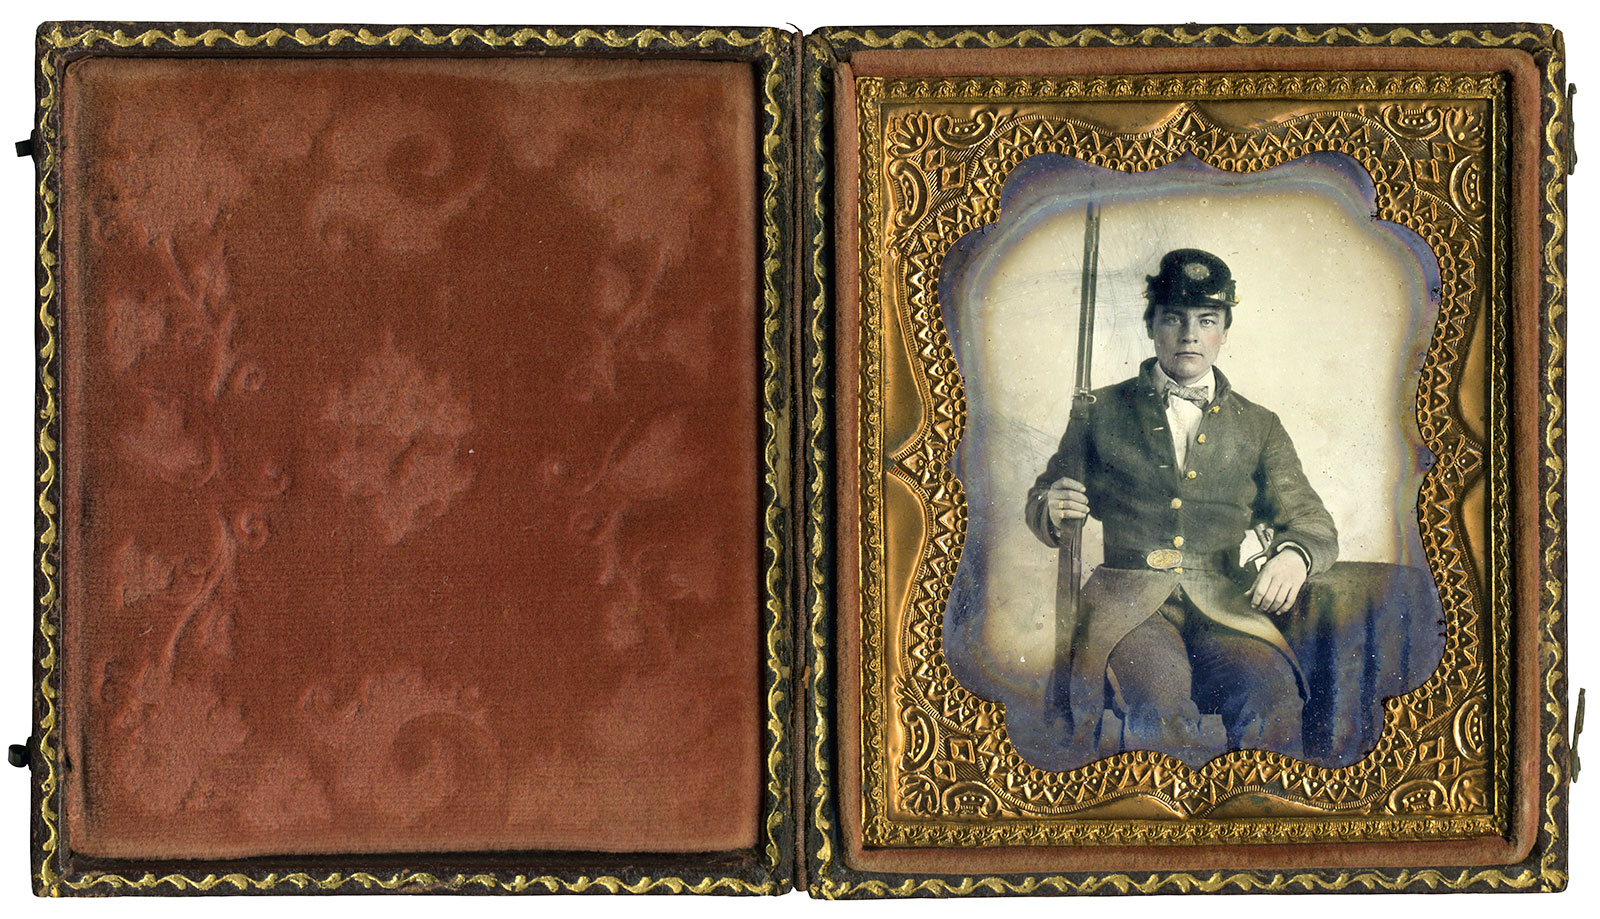 Sixth-plate ambrotype by an anonymous photographer. Paul Reeder collection.